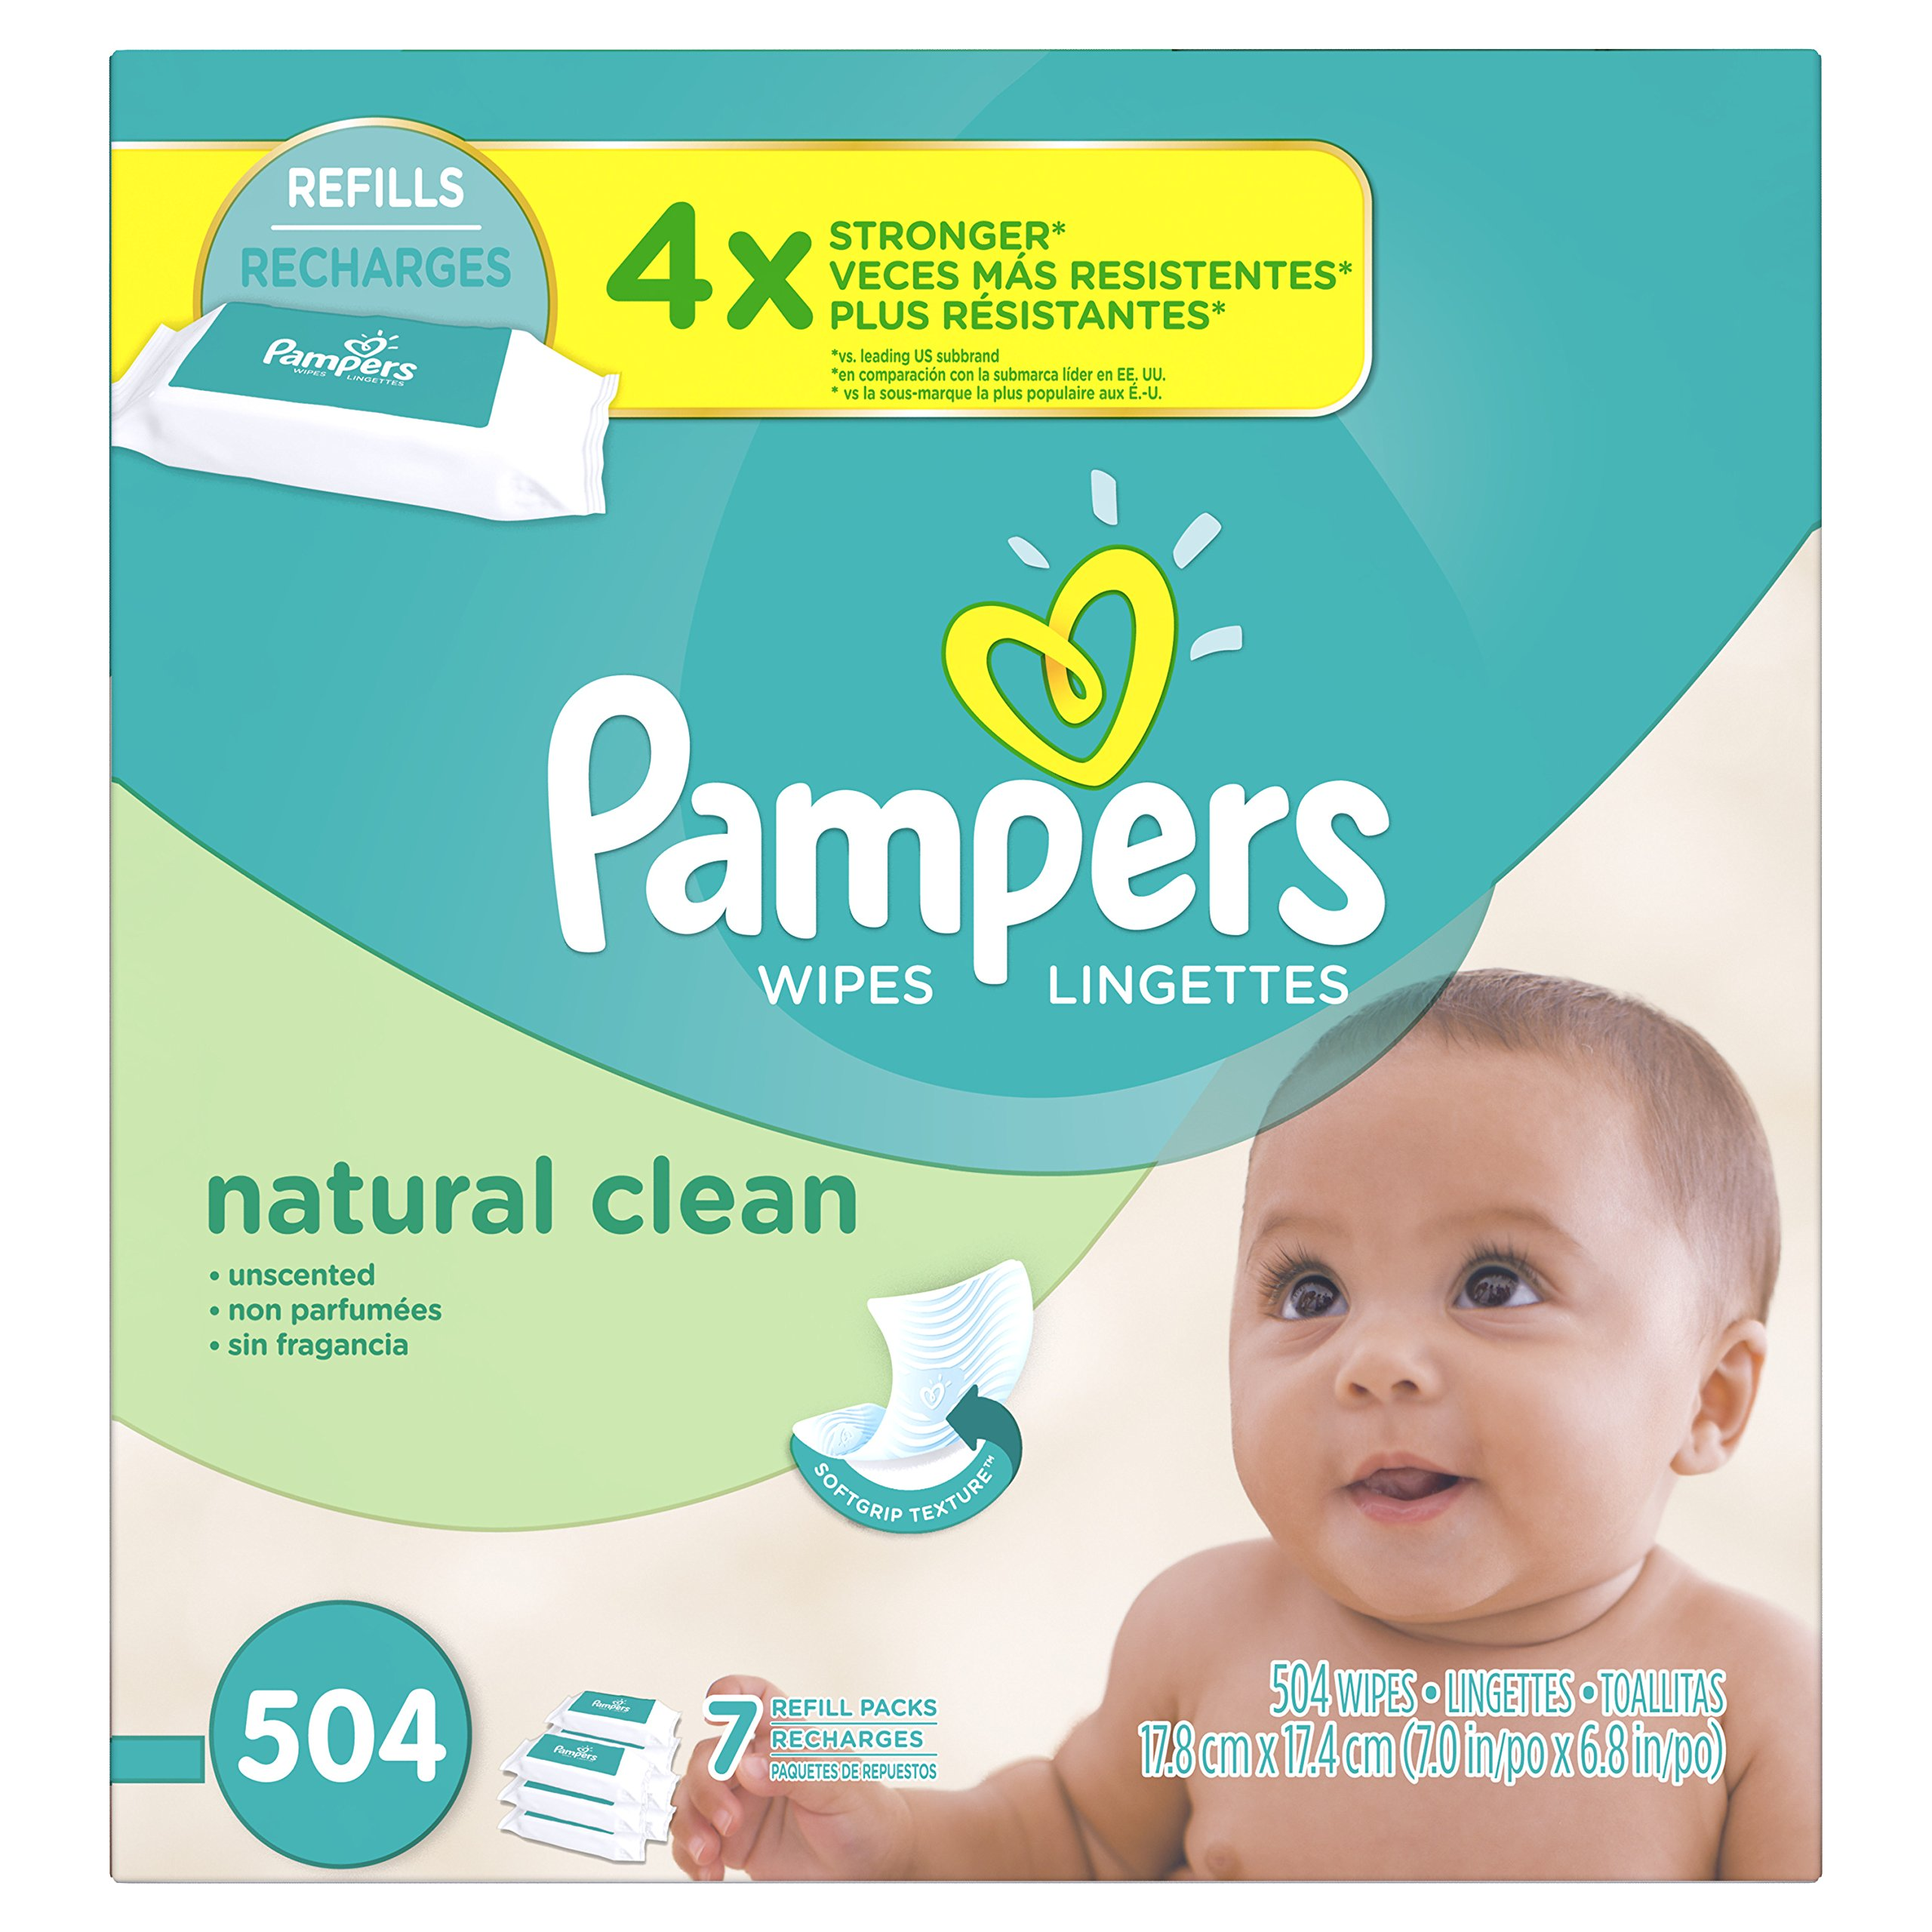 Pampers Natural Clean Unscented Water Baby Wipes 7X Refill Packs, 504 Count,72 Count (Pack of 7)